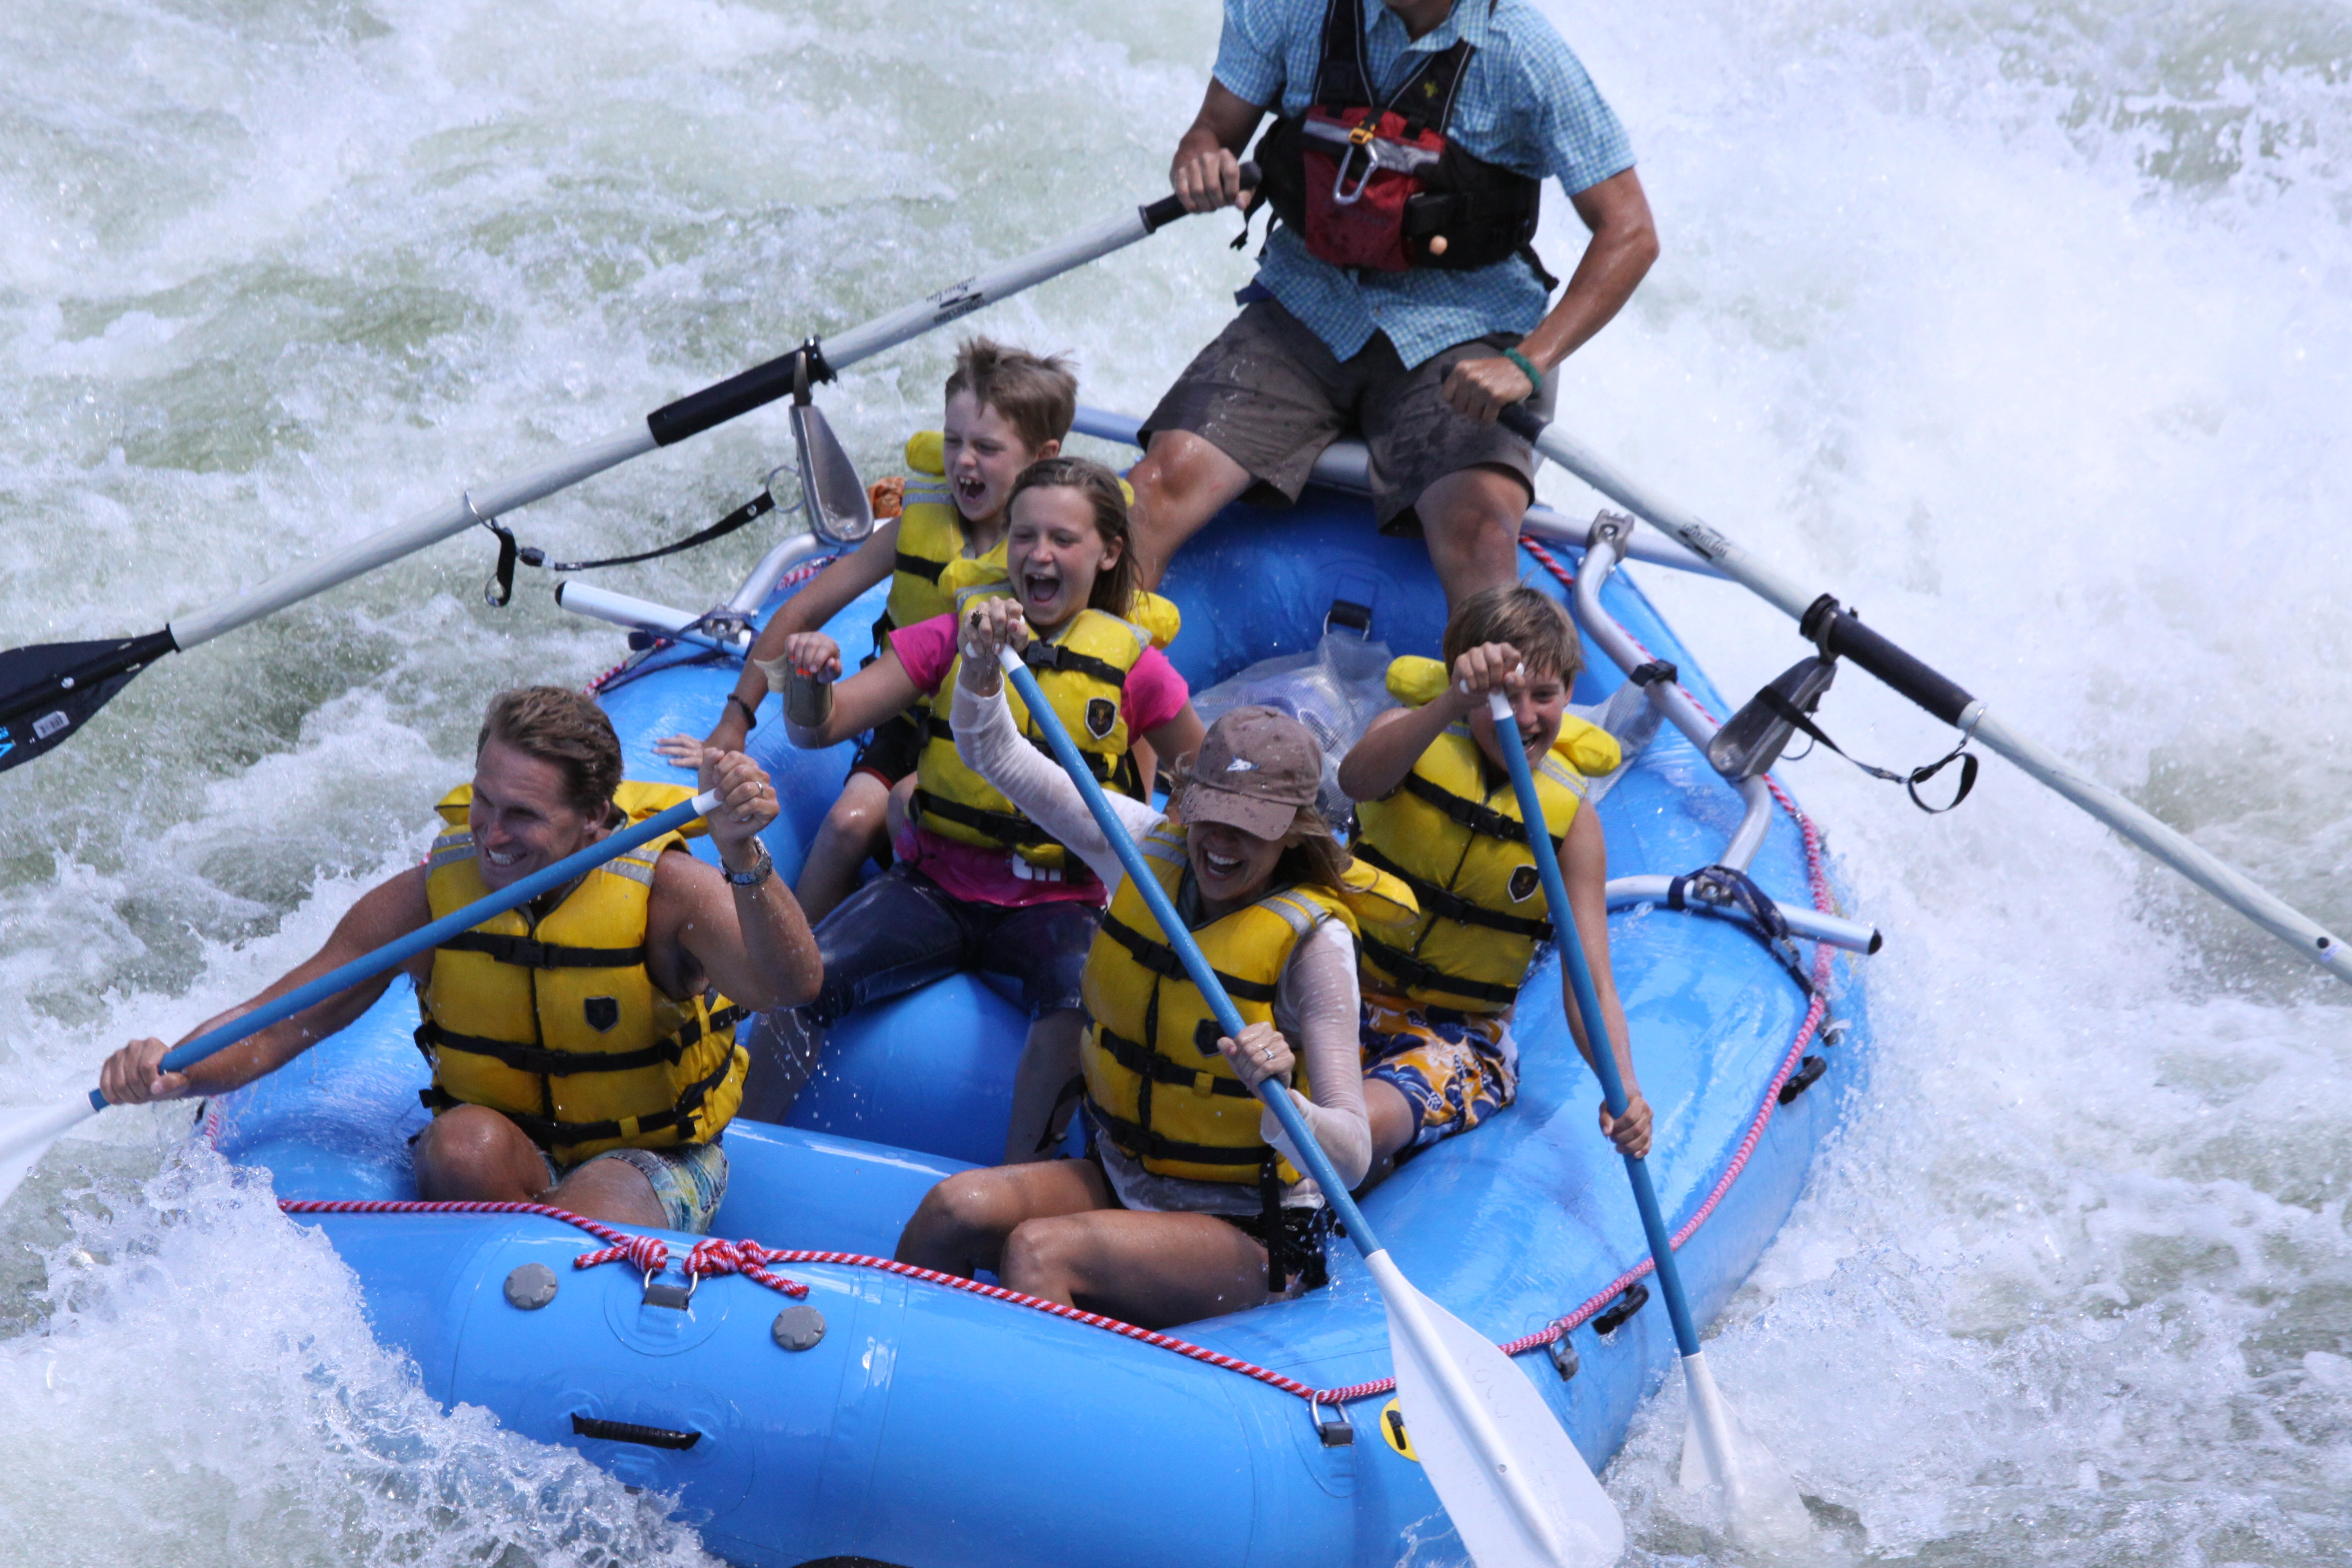 white water rafting Mason adventures is the oldest and most acclaimed bali rafting company set in the ayung river at ubud that offers 5 stars service from the start to finish.